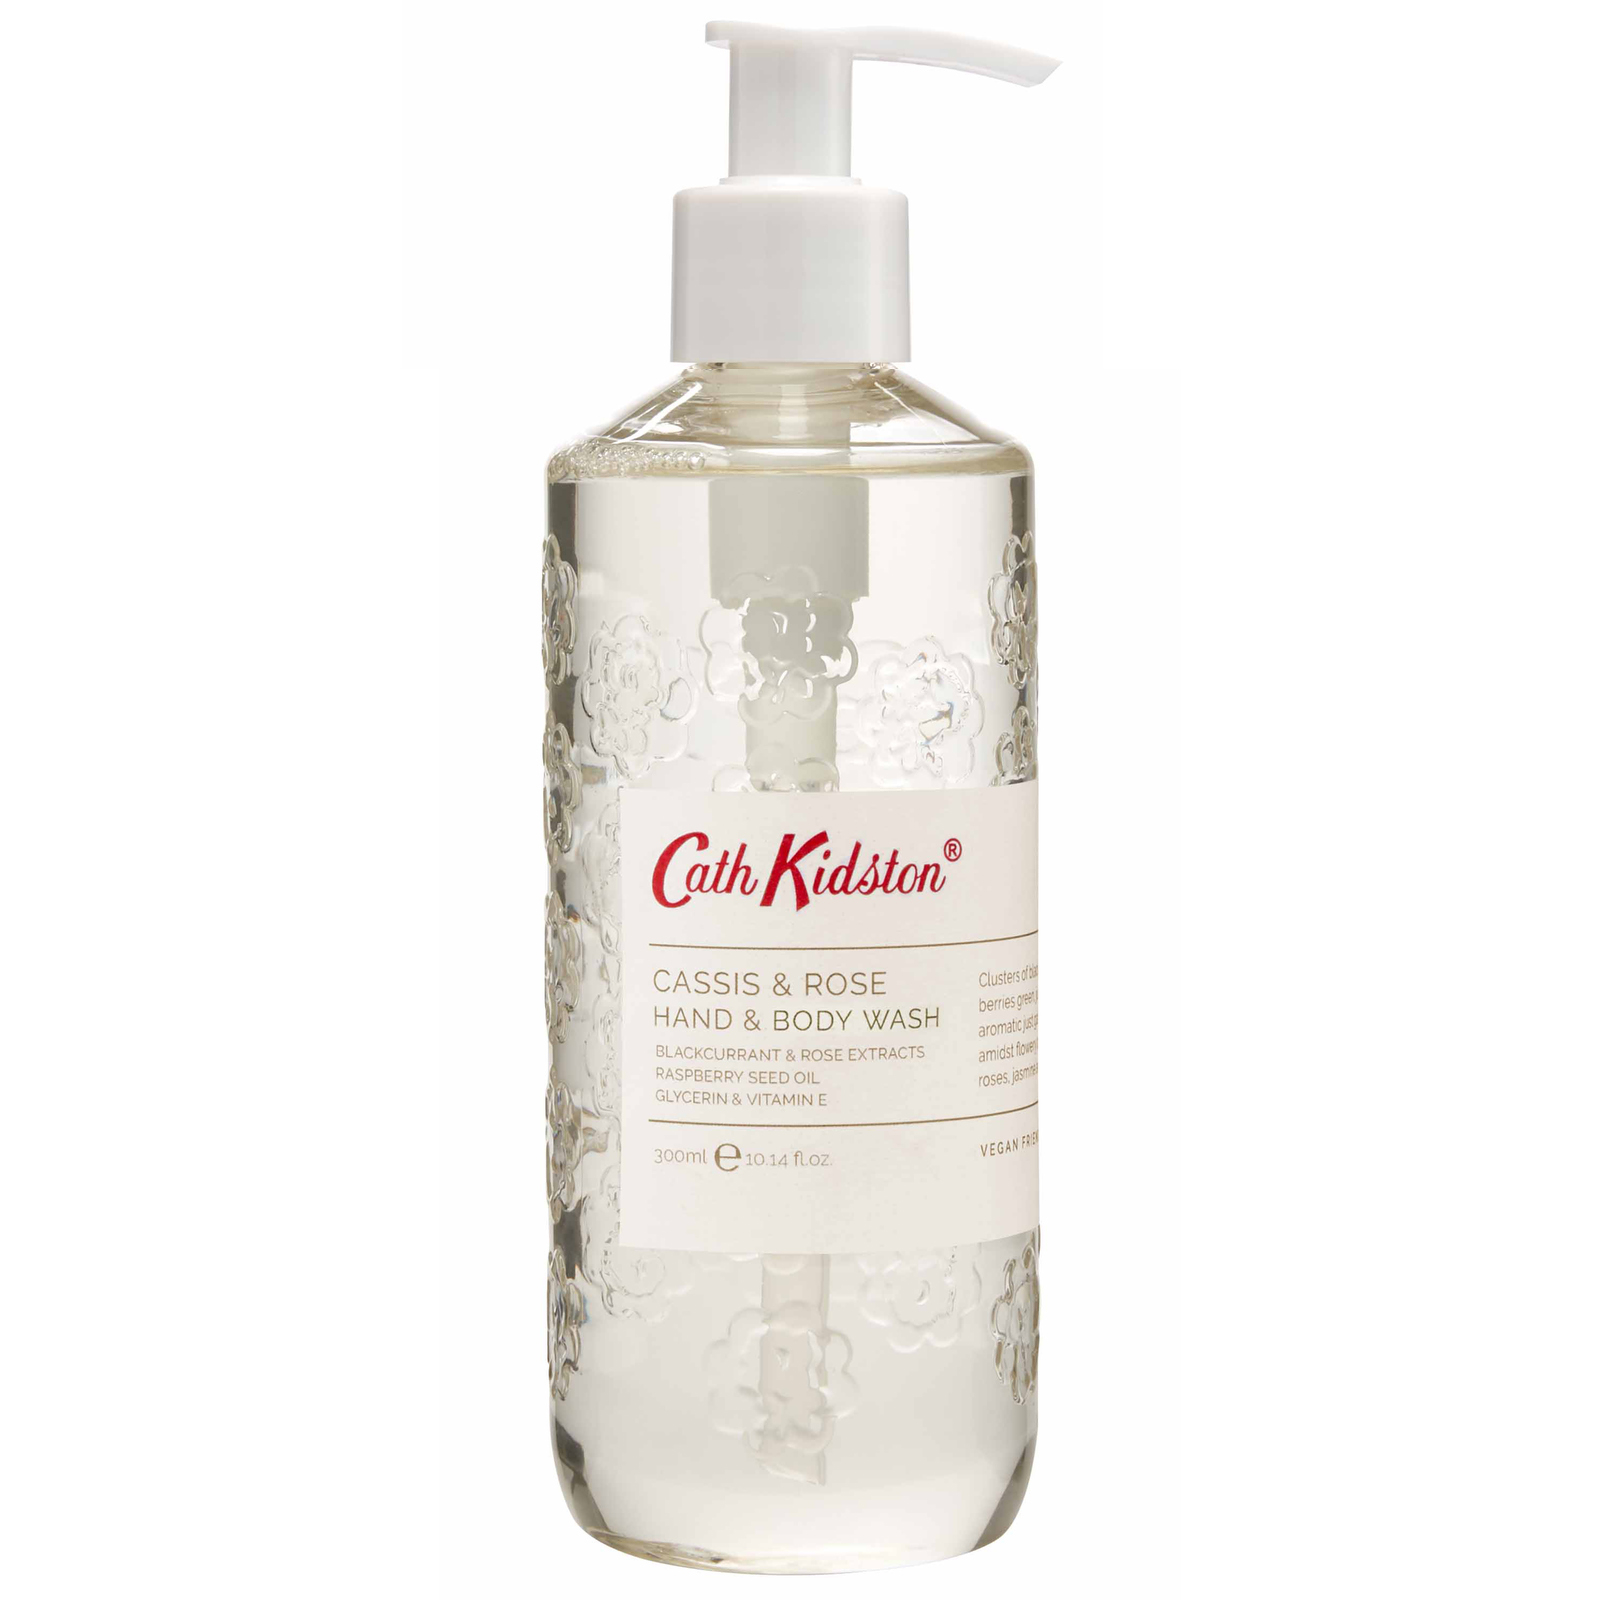 Cath Kidston Christmas 2020 Cassis & Rose Hand & Body Wash 300ml